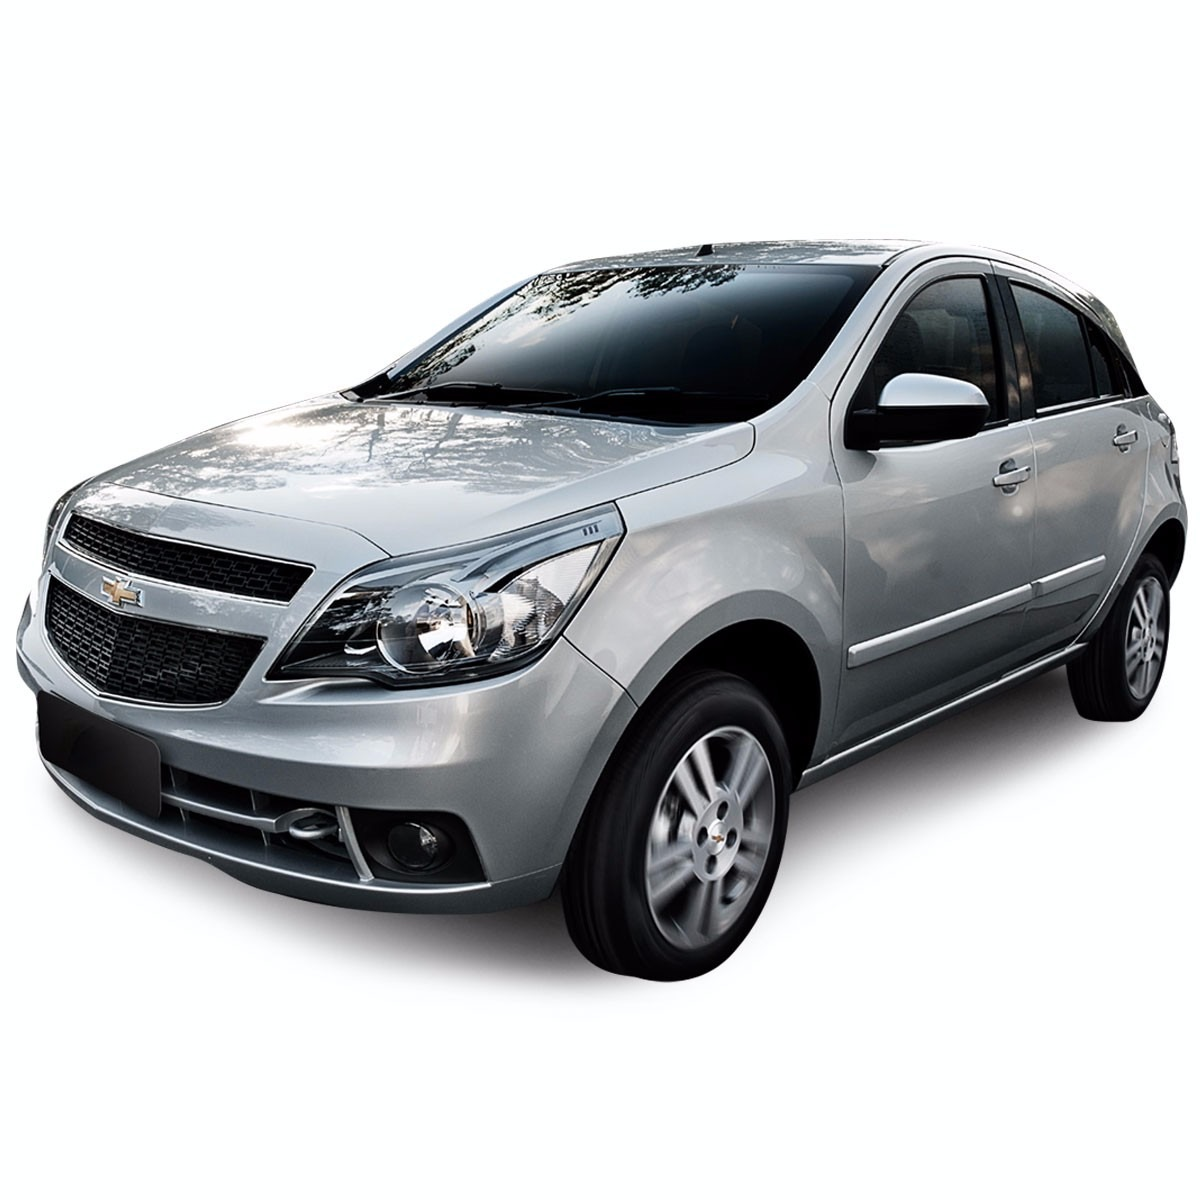 2010 2011 2012 2013 2014 Camaro Parts From Rpidesignscom Autos Post